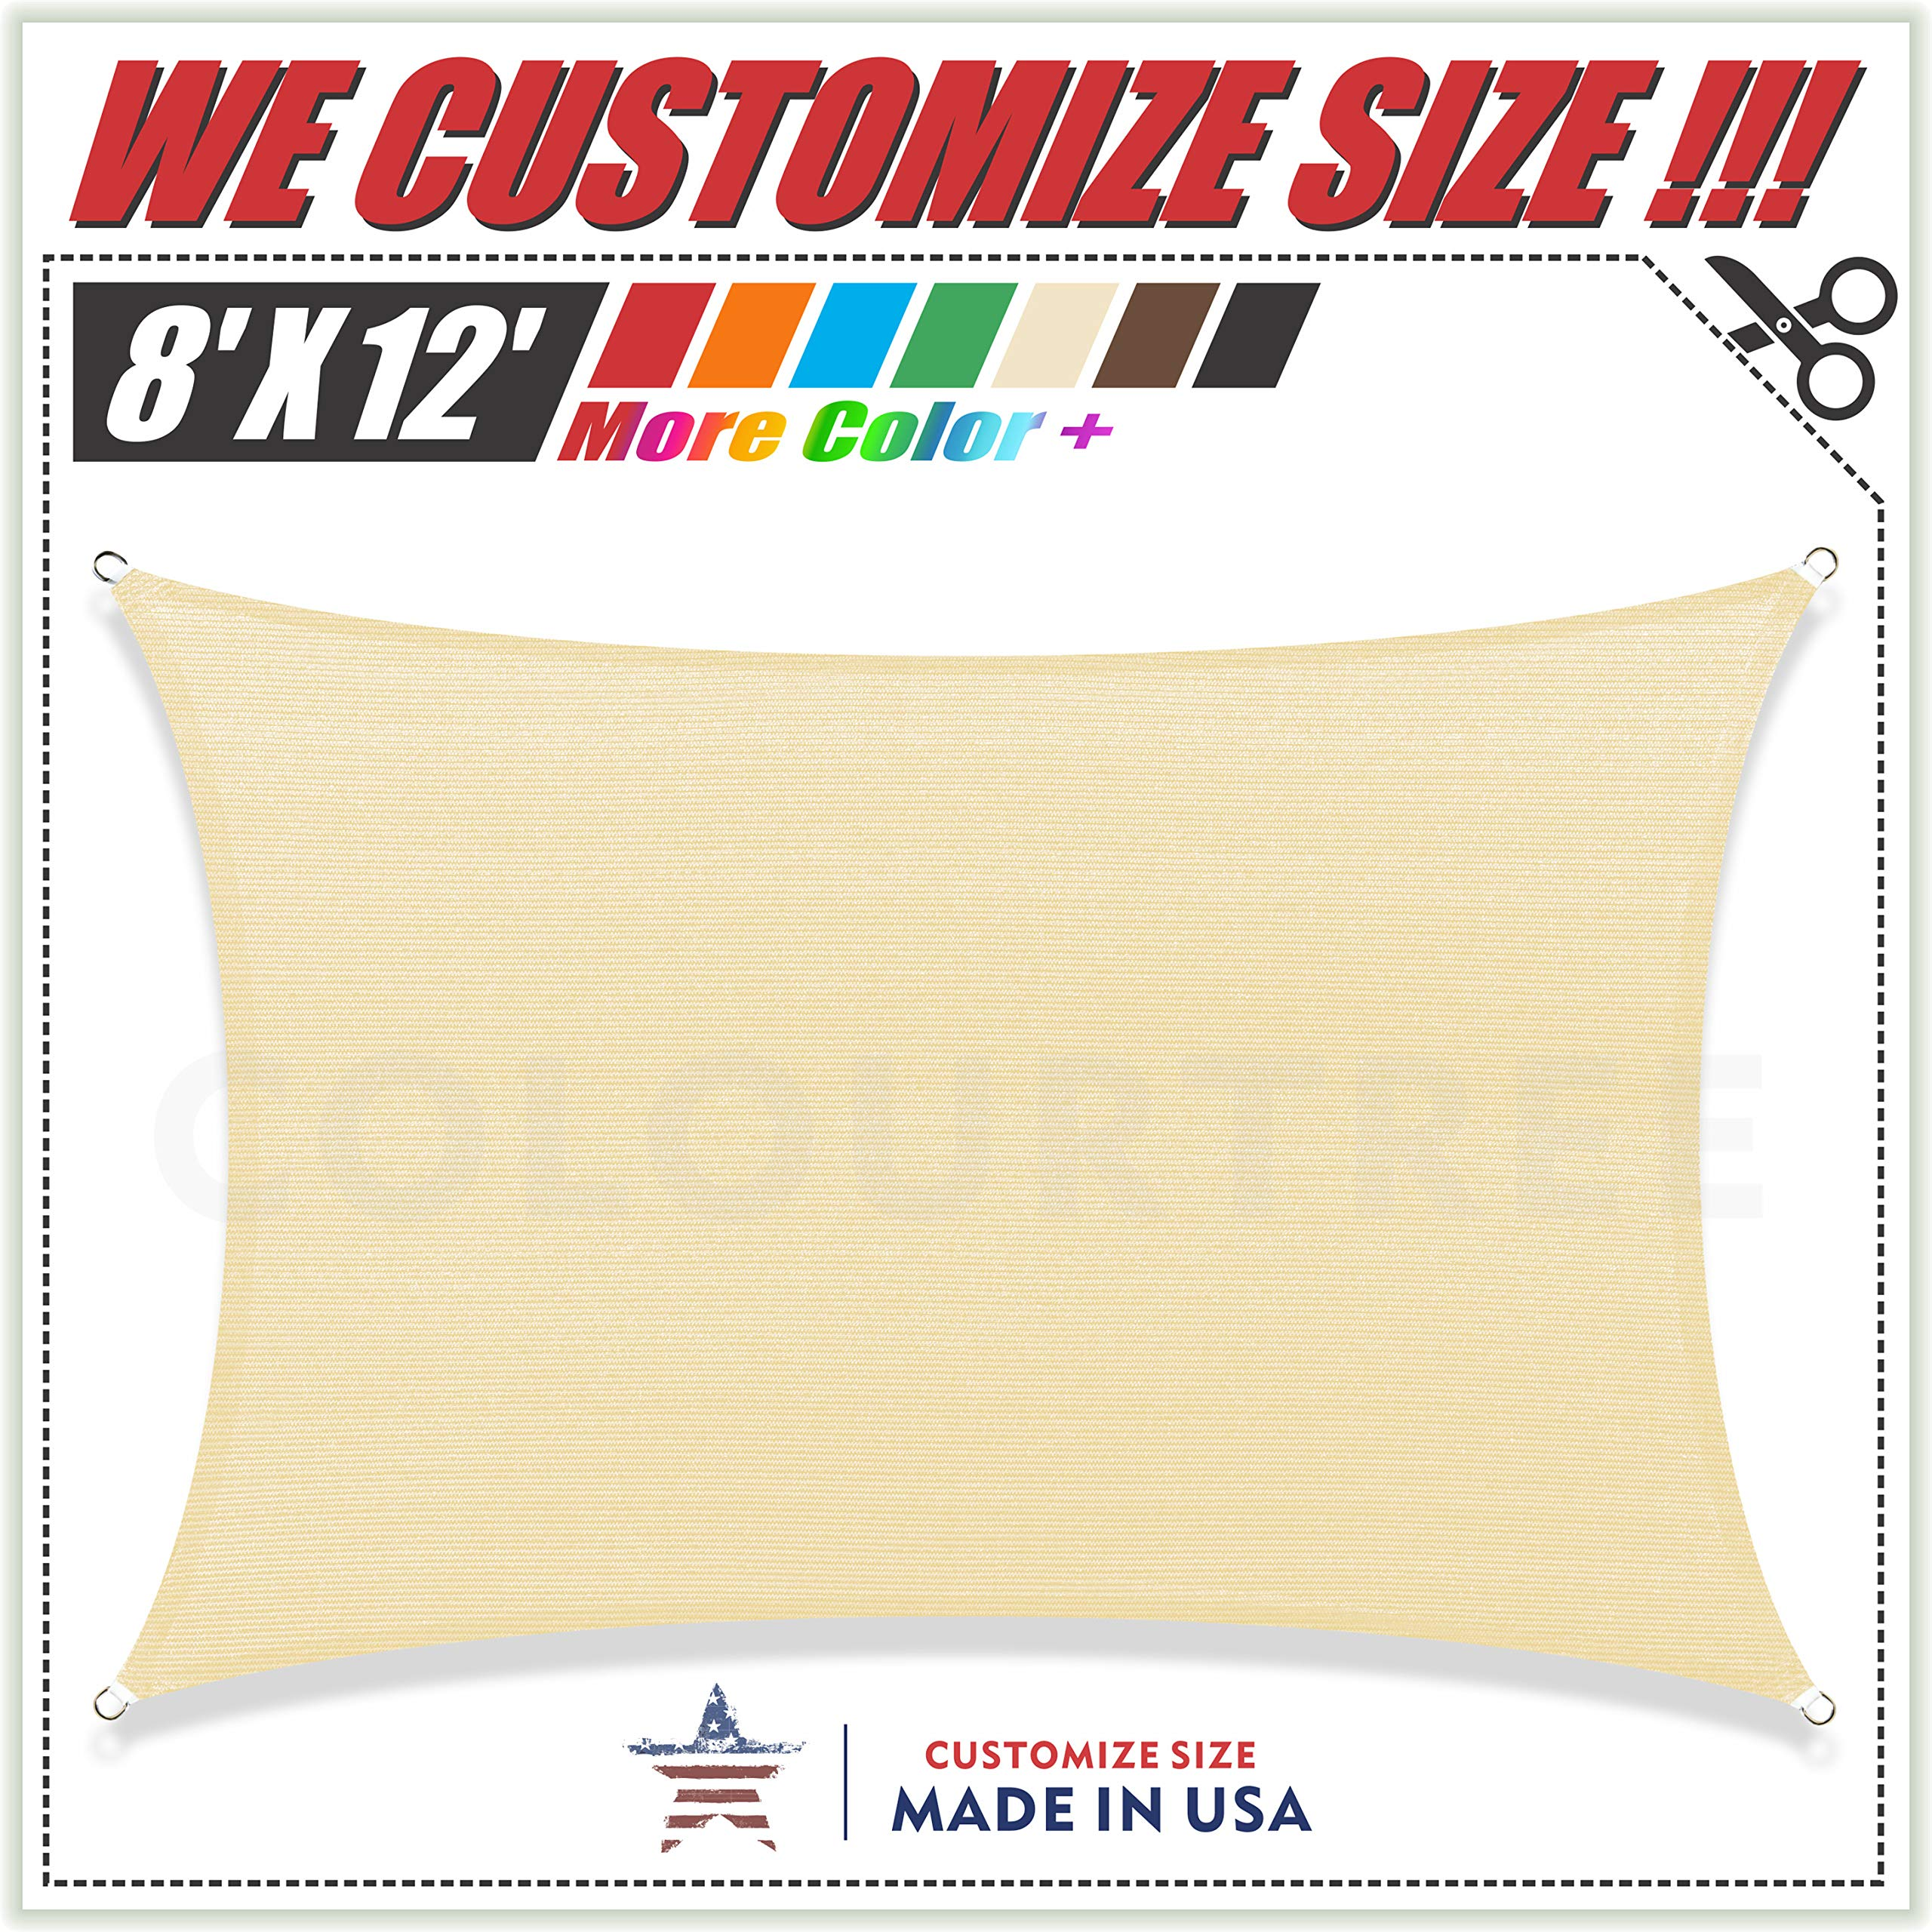 ColourTree 8' x 12' Beige Sun Shade Sail Rectangle Canopy Awning, Heavy Duty Commercial Grade ,We Make Custom Size by ColourTree